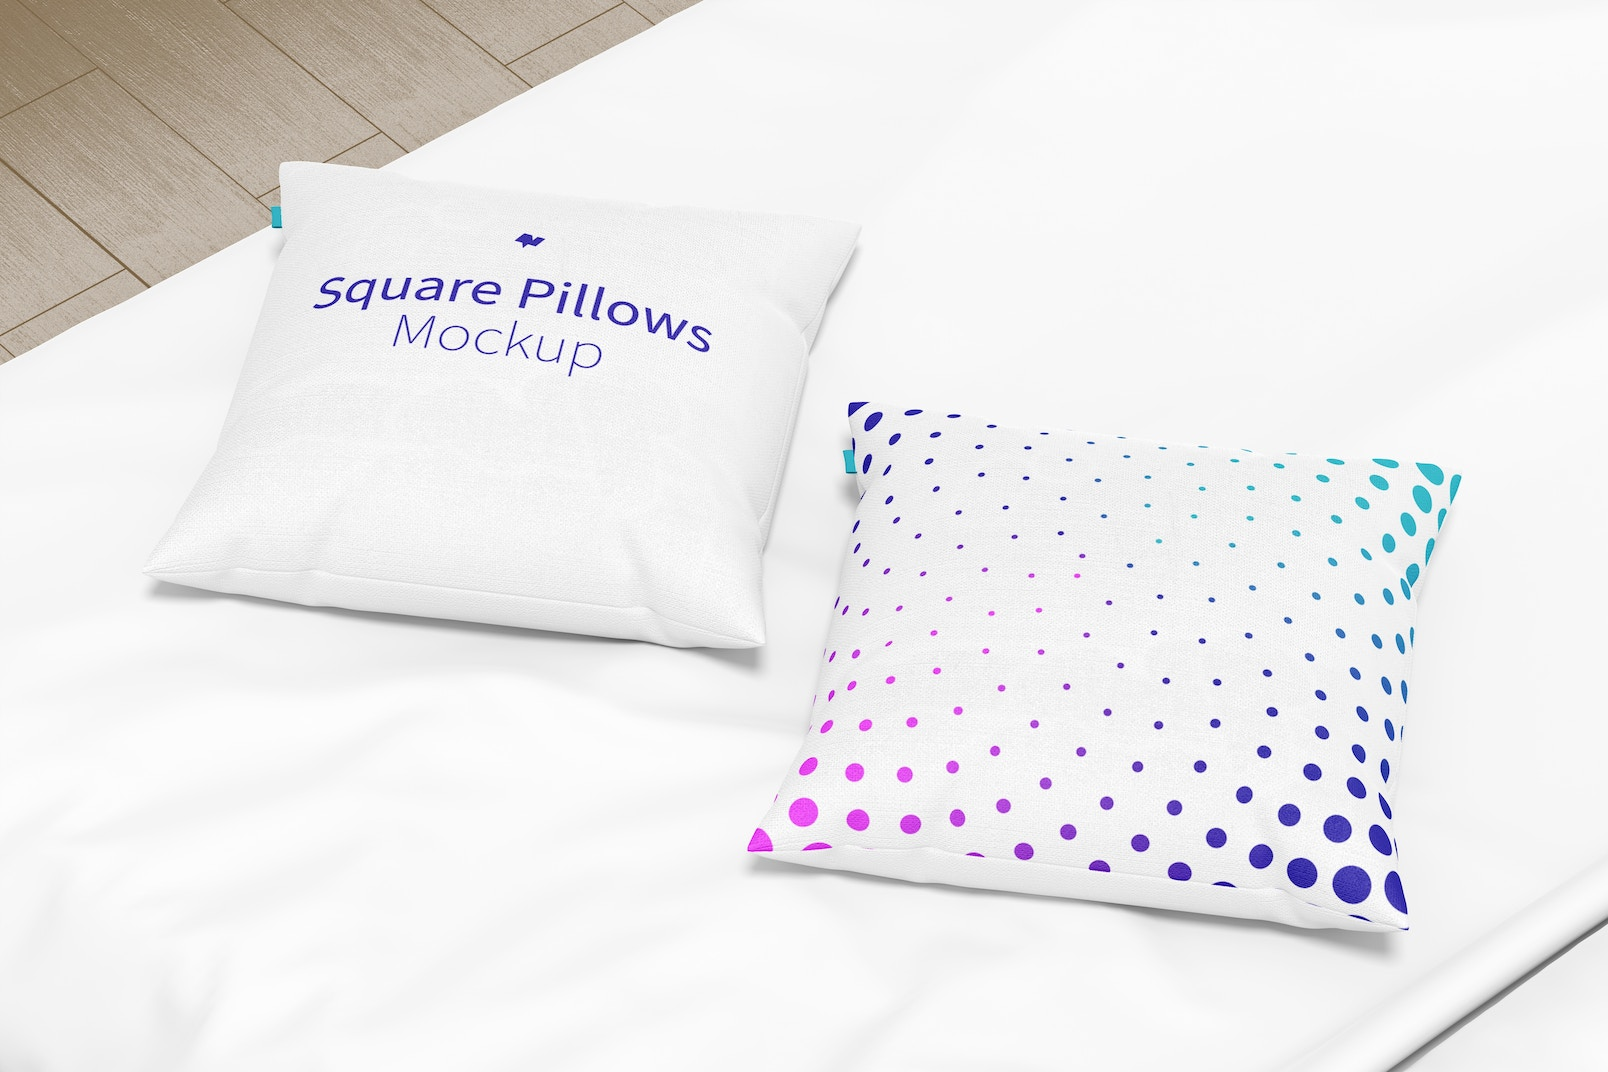 Square Pillows Mockup, Perspective